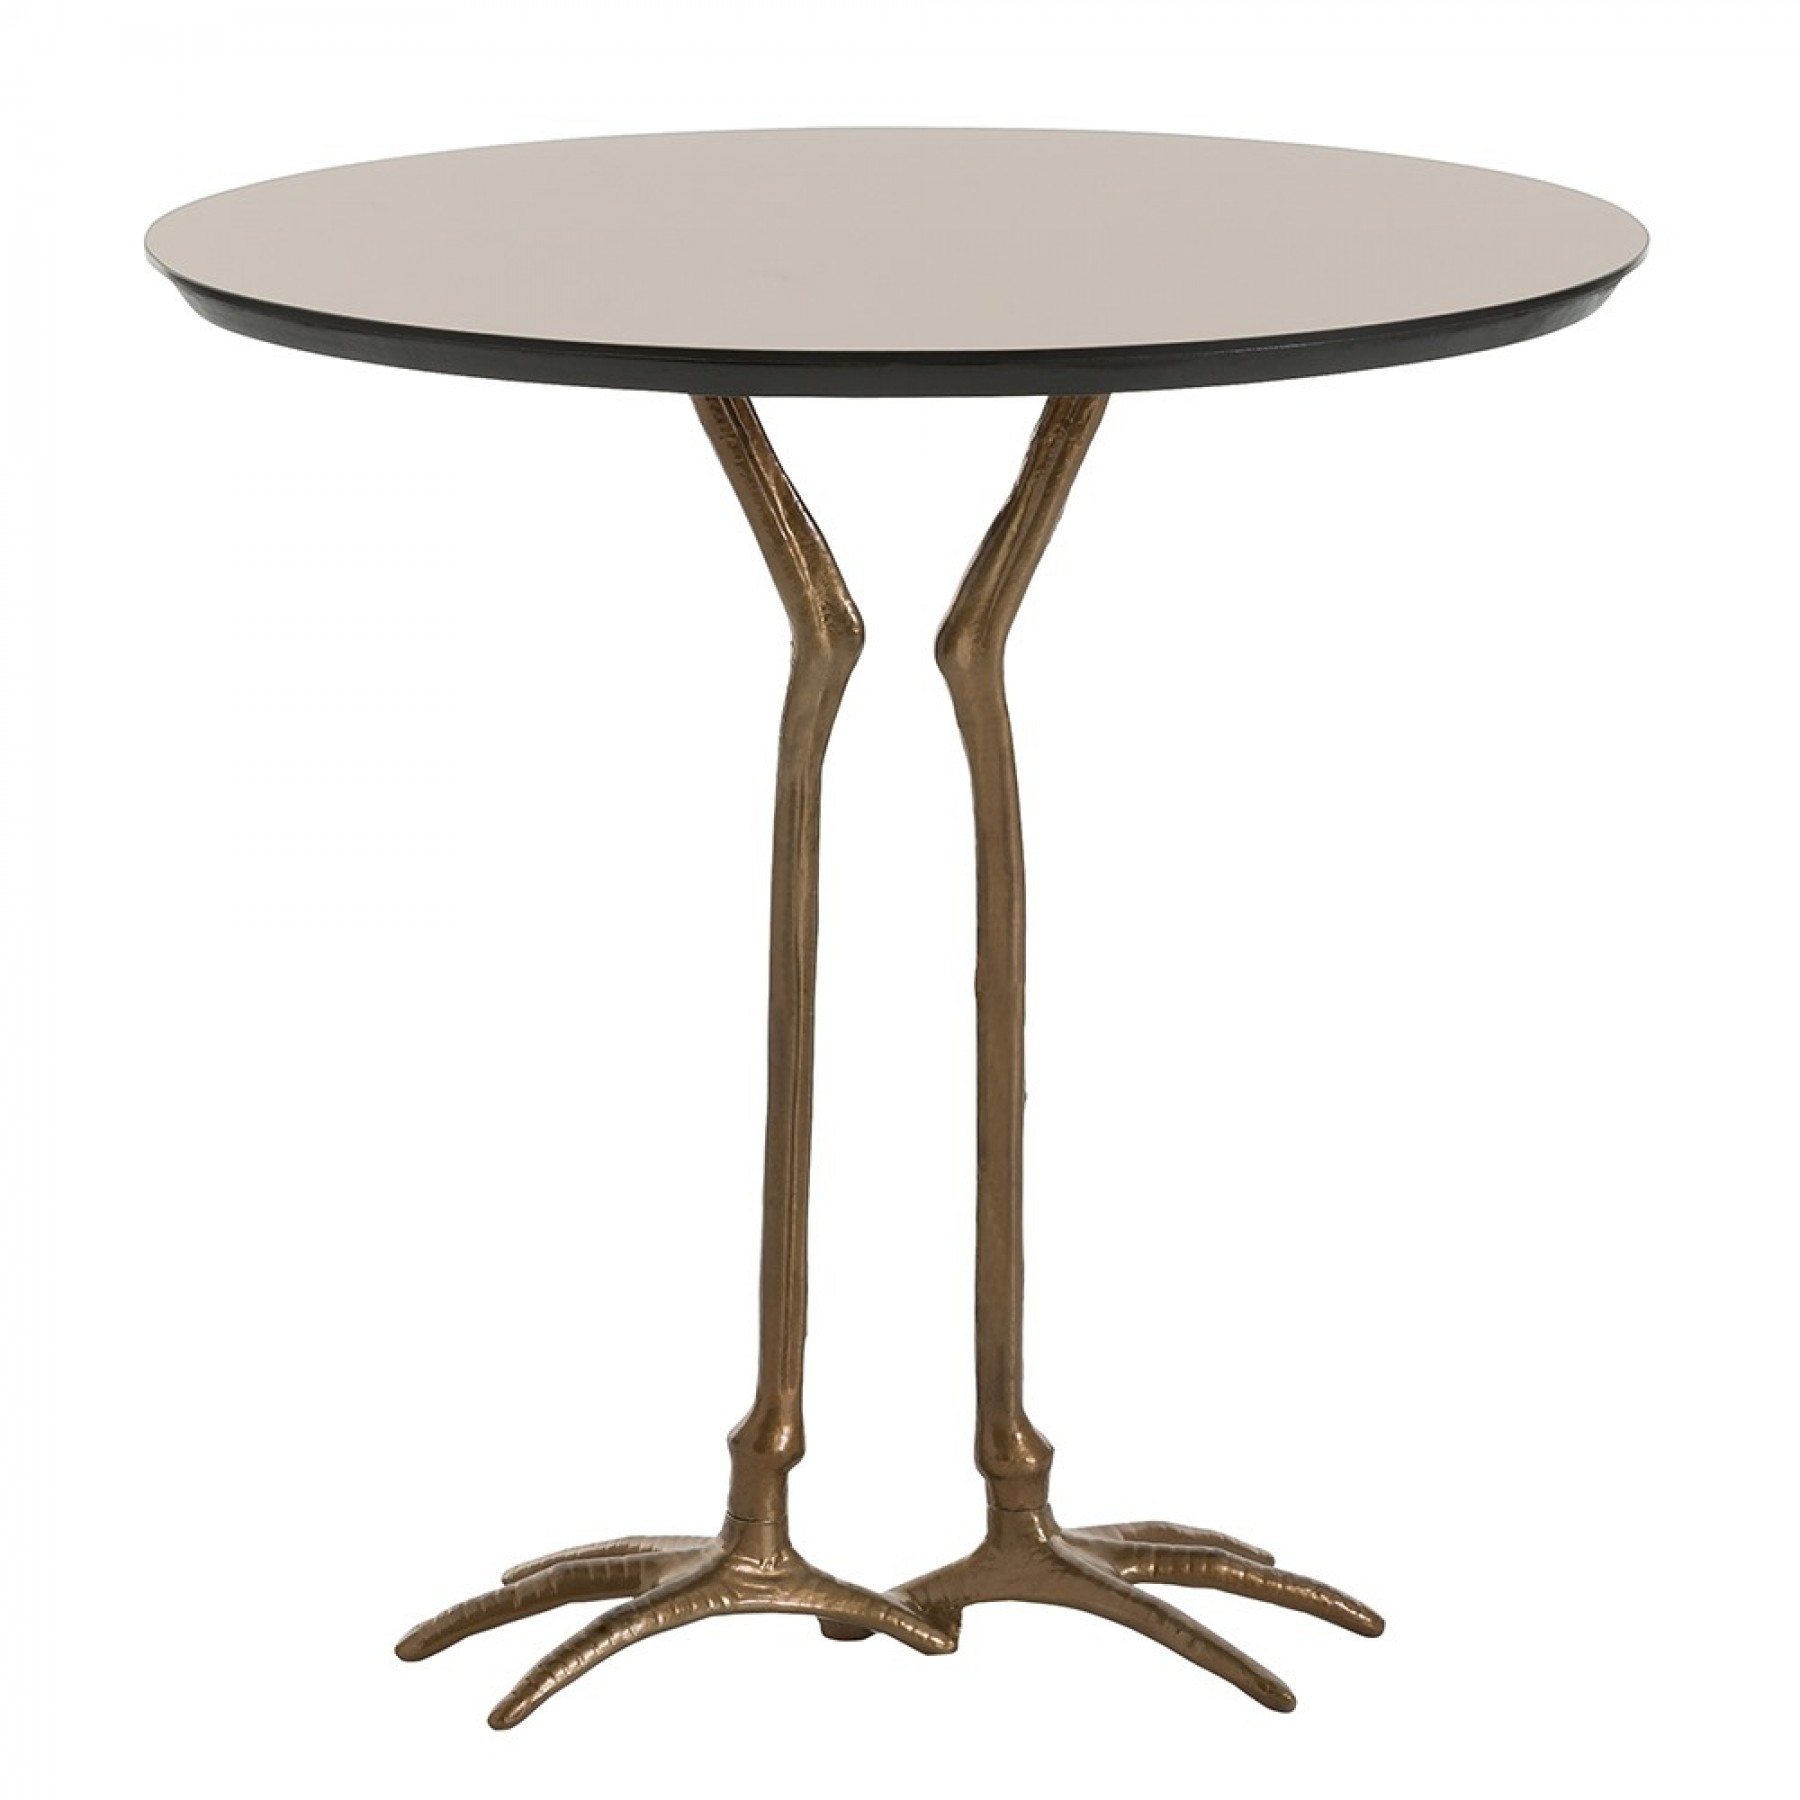 emilio accent table dining room target living tables barnwood bar square patio furniture covers pieces ashley chairs black lamp for bend round nightstand tablecloth make side